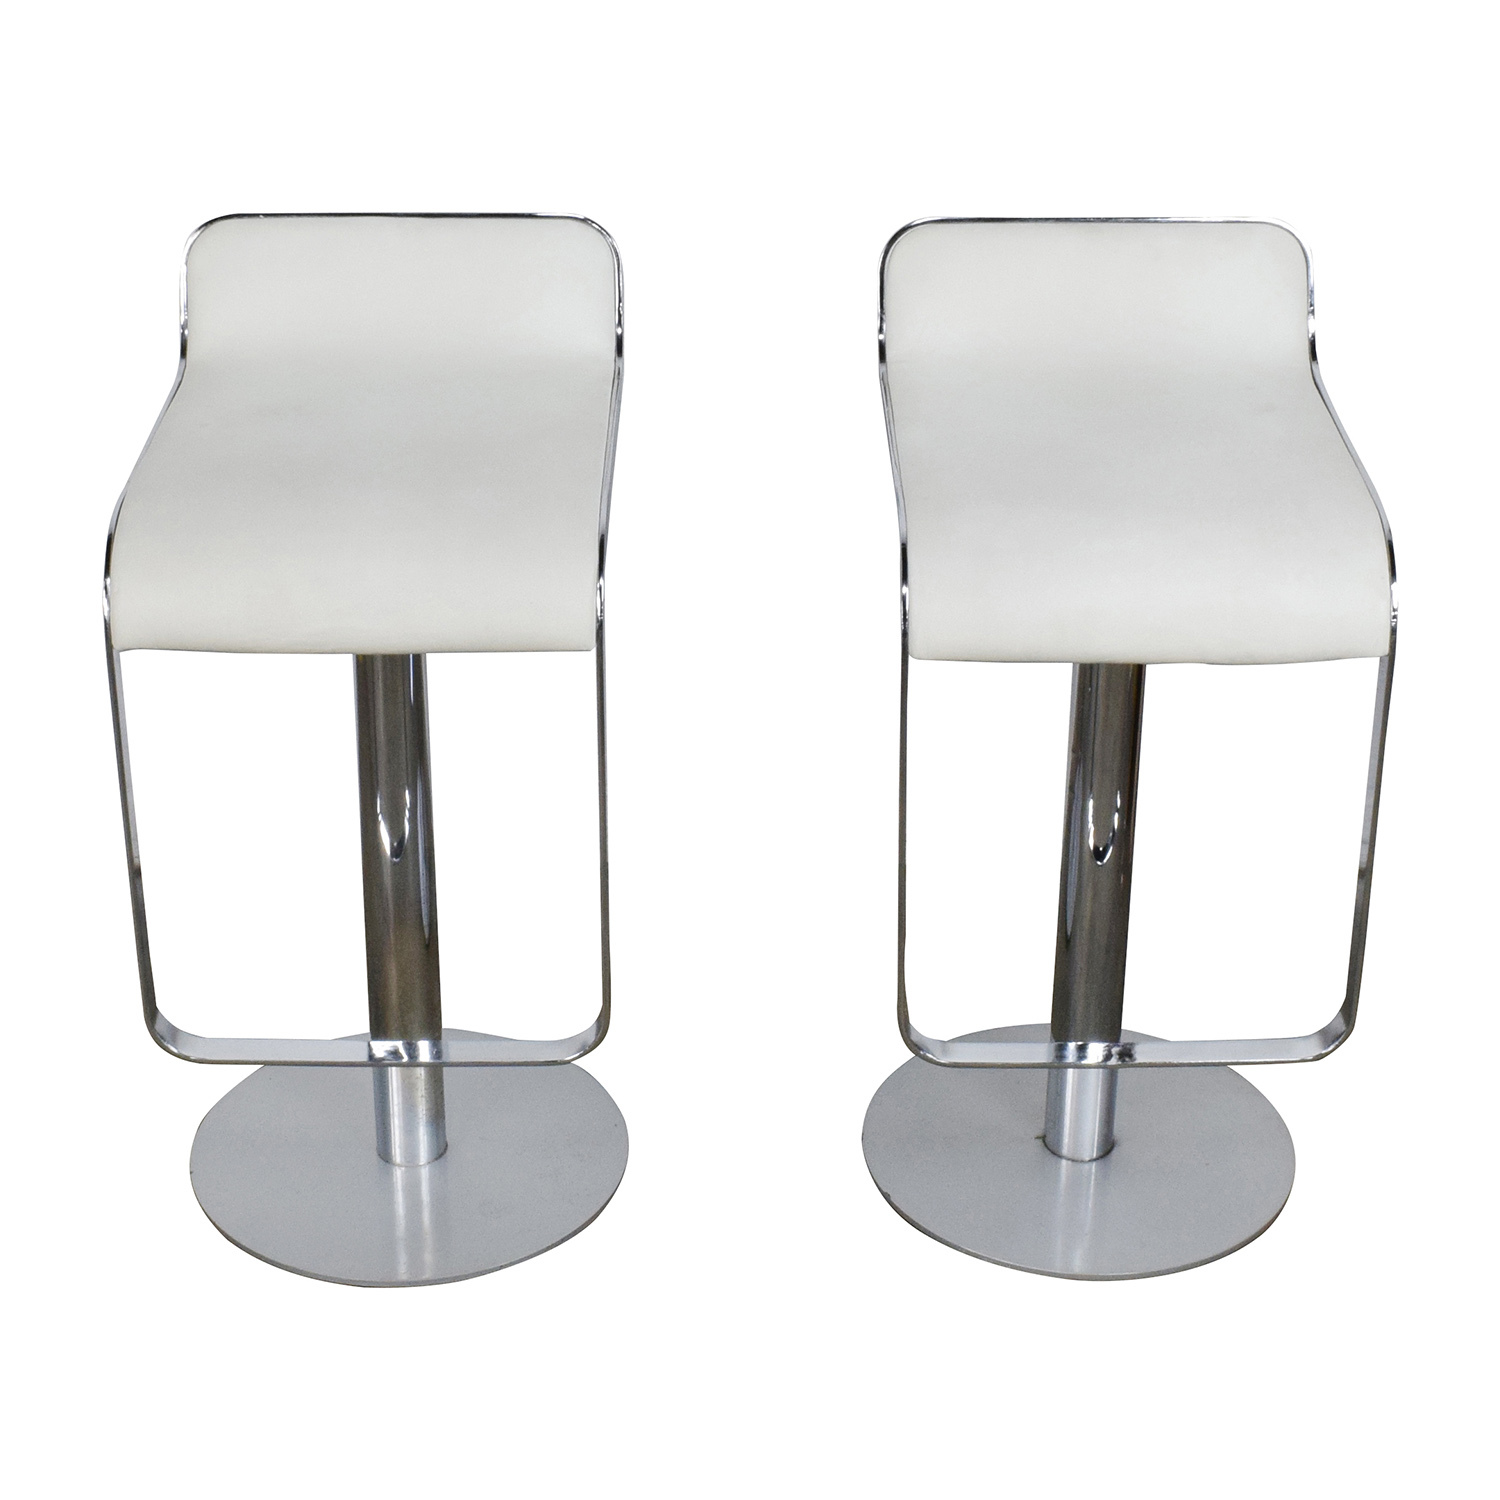 Modern White Bar Stools 88 Off All Modern All Modern White Leather Bar Stools